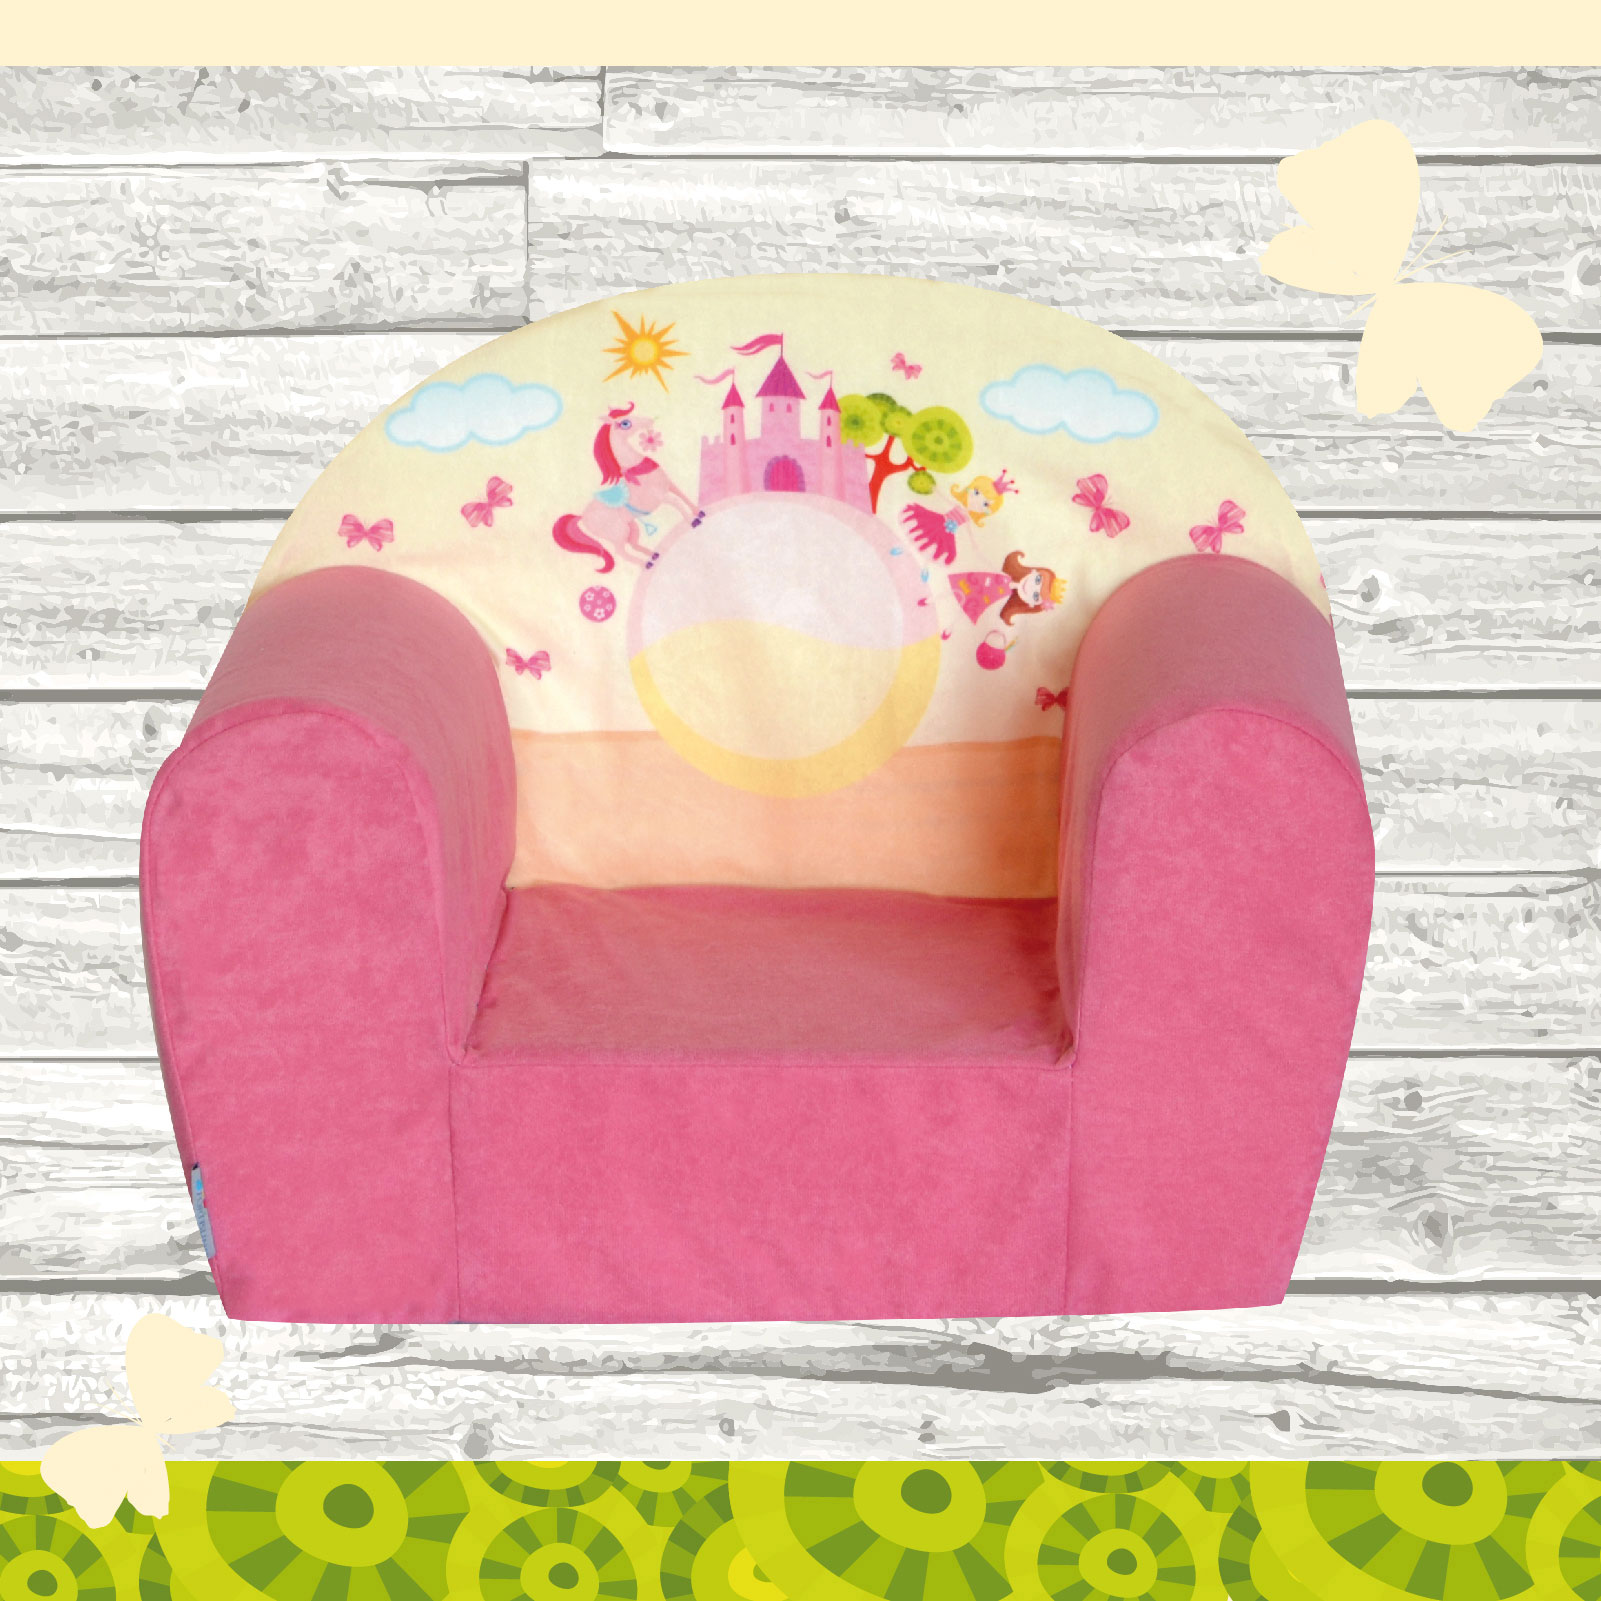 kindersessel mini kindercouch sessel kinderm bel sofa. Black Bedroom Furniture Sets. Home Design Ideas